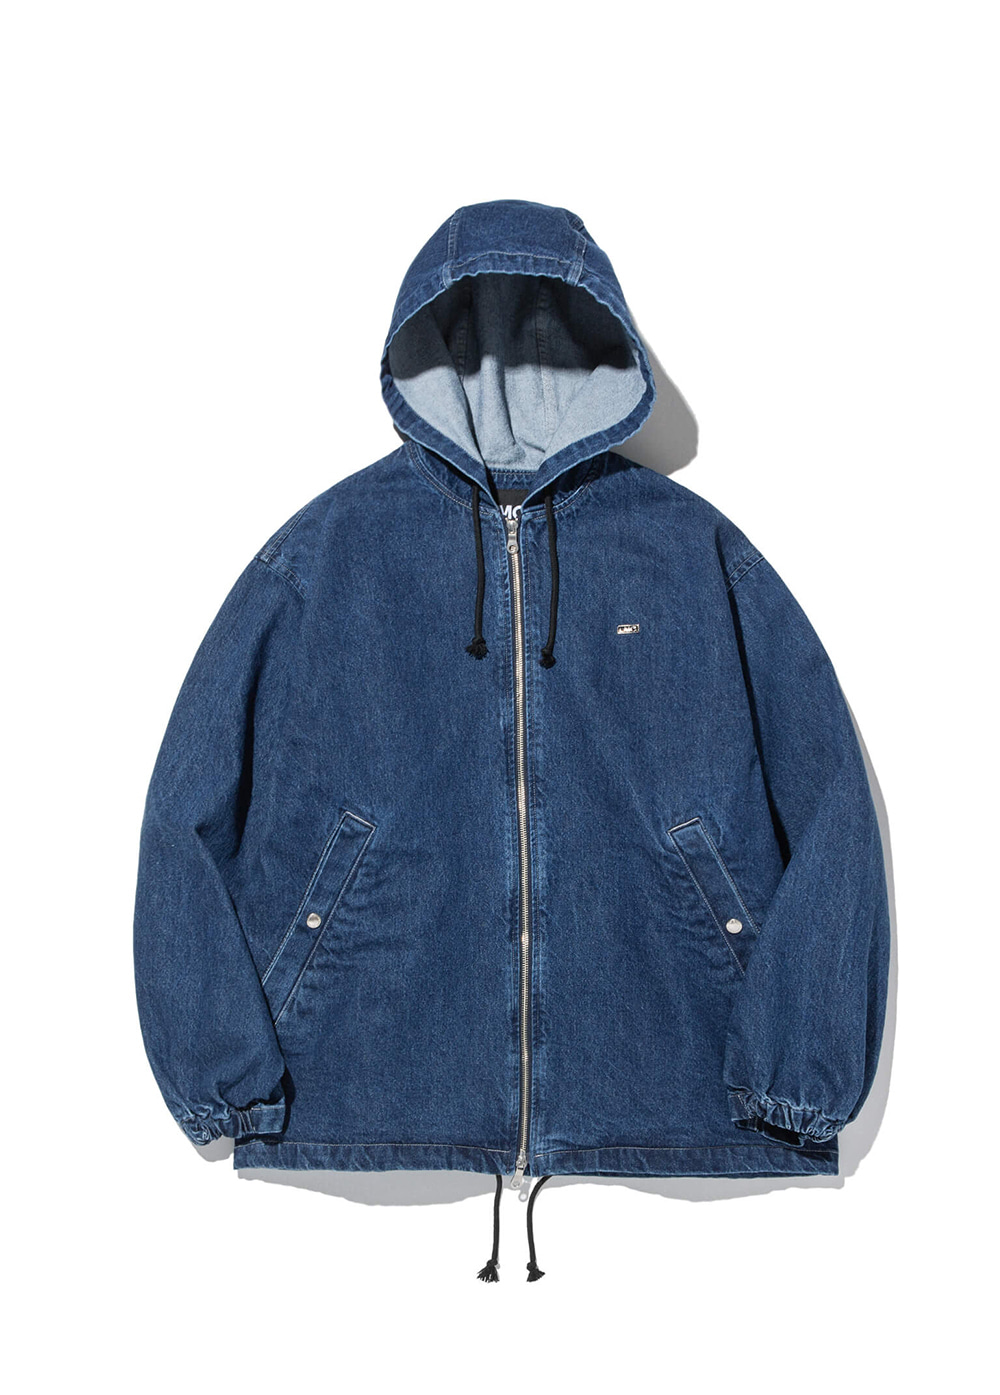 LMC STONE WASHED DENIM HOODIE JACKET blue